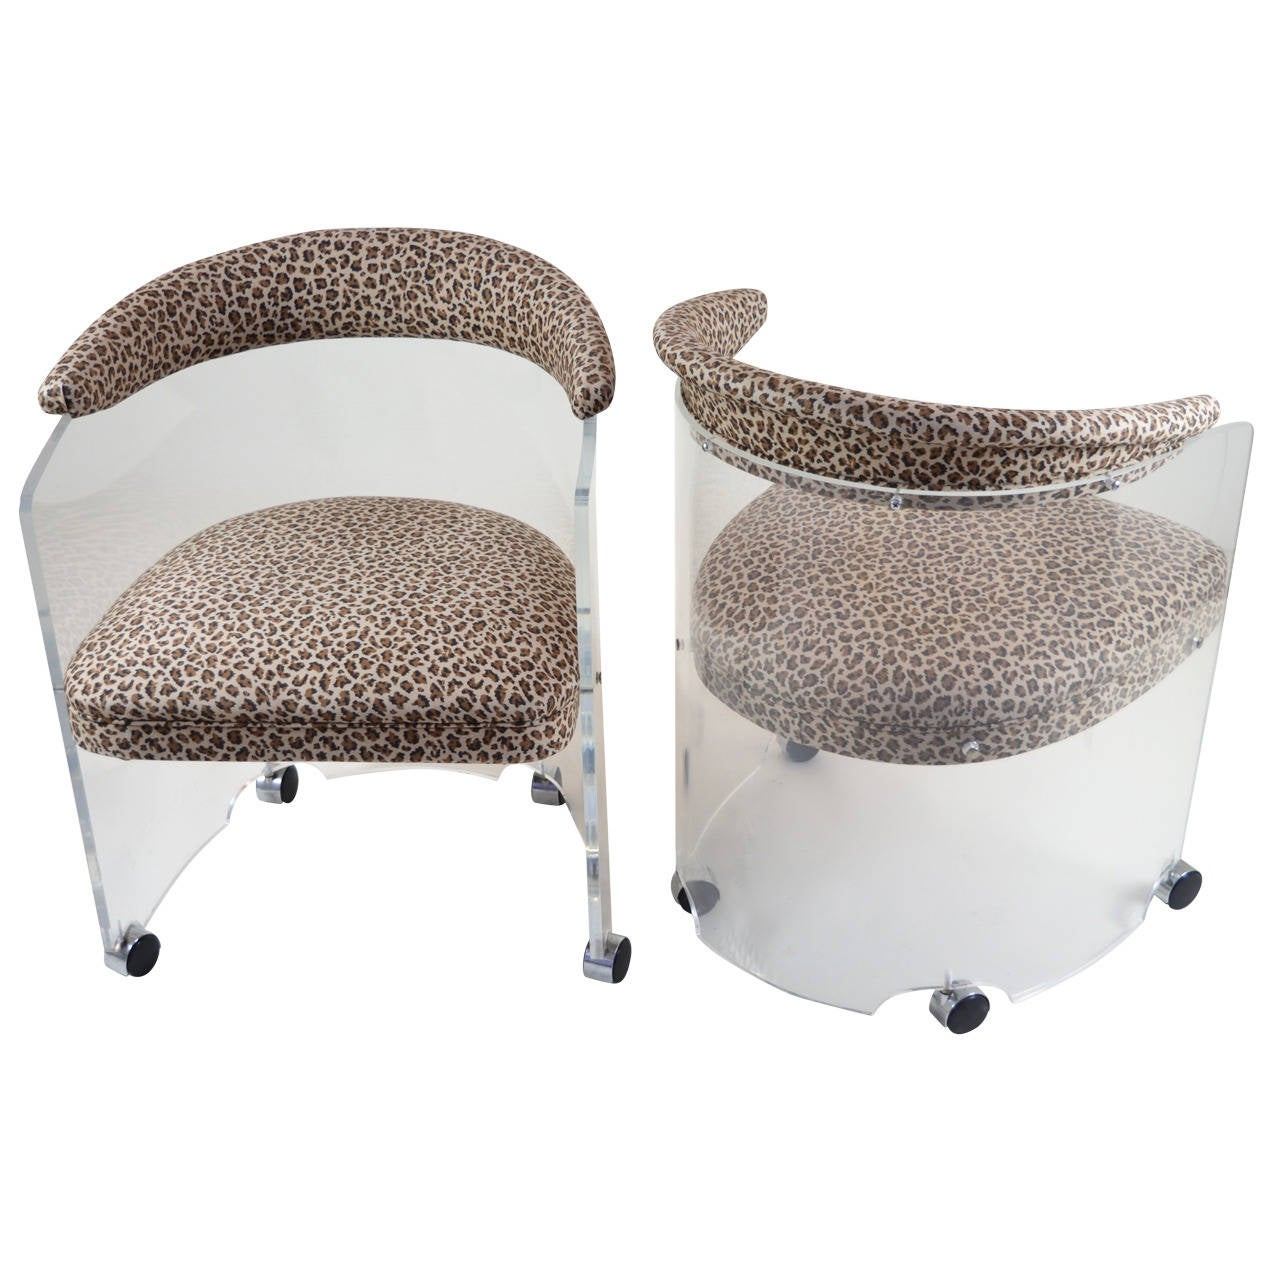 Pair of Lucite Barrel Chairs with Leopard Print Seats at ...